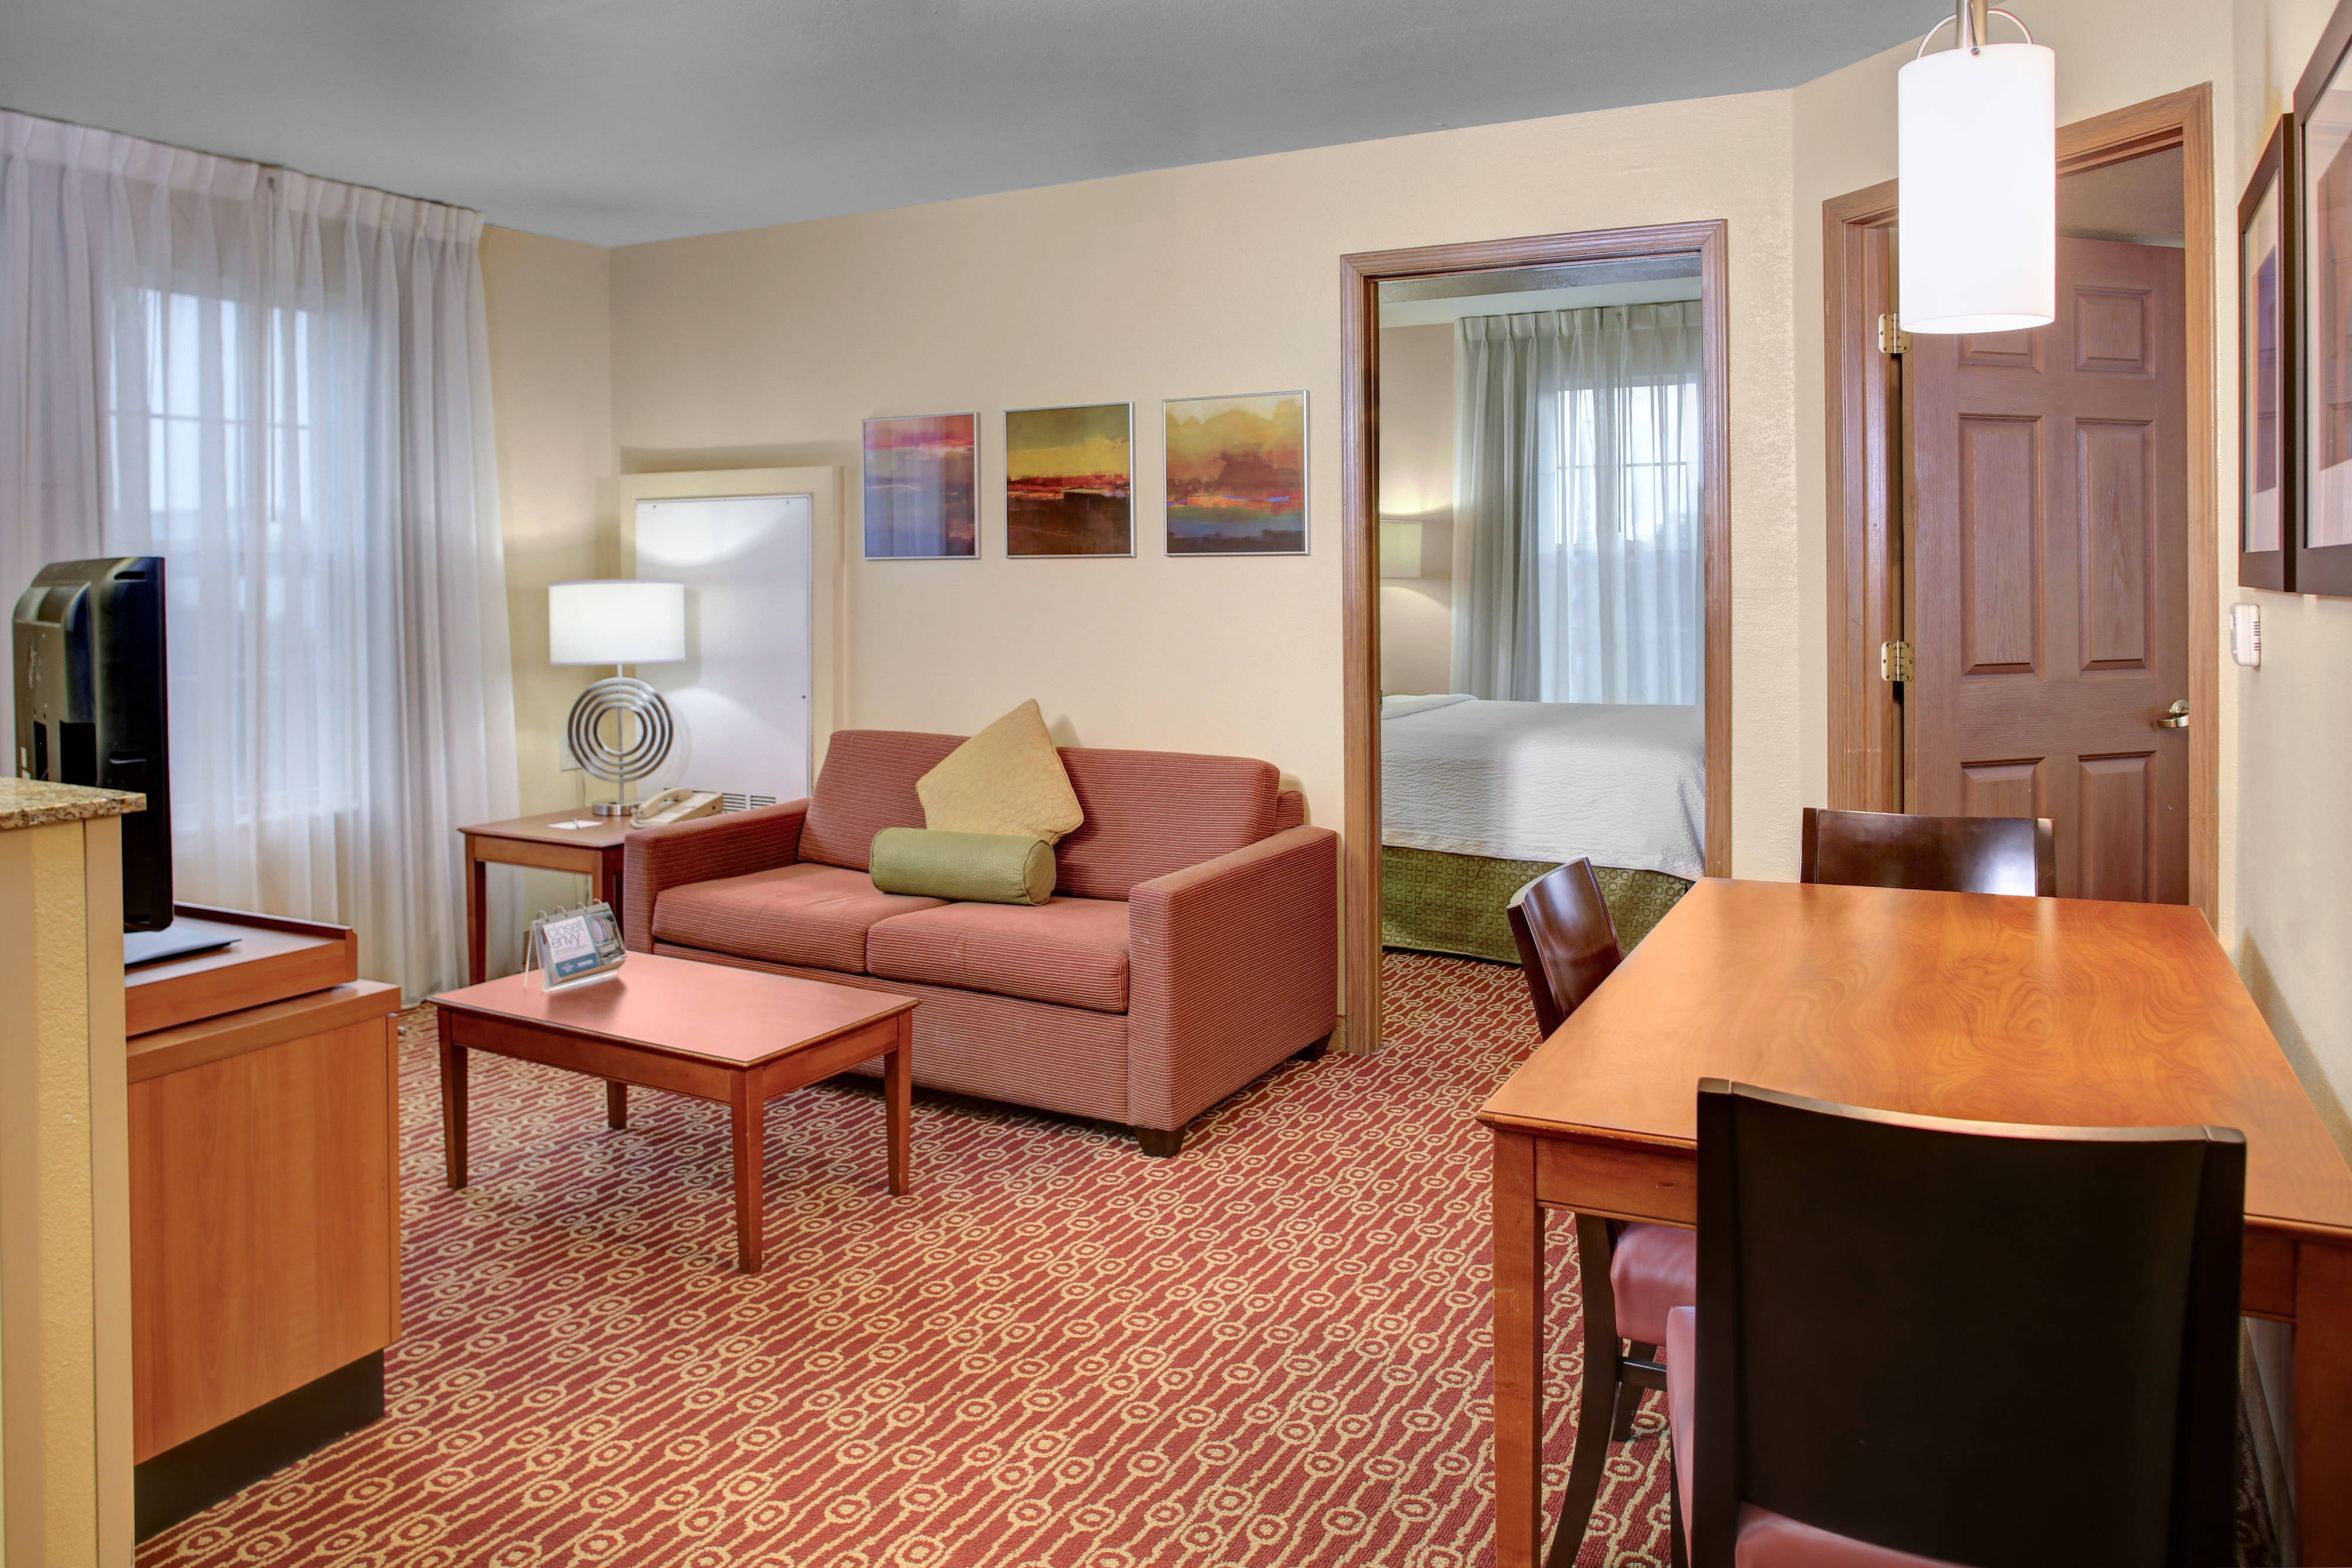 Towneplace suites columbus worthington oh extended stay hotels columbus ohio for 2 bedroom suites columbus ohio